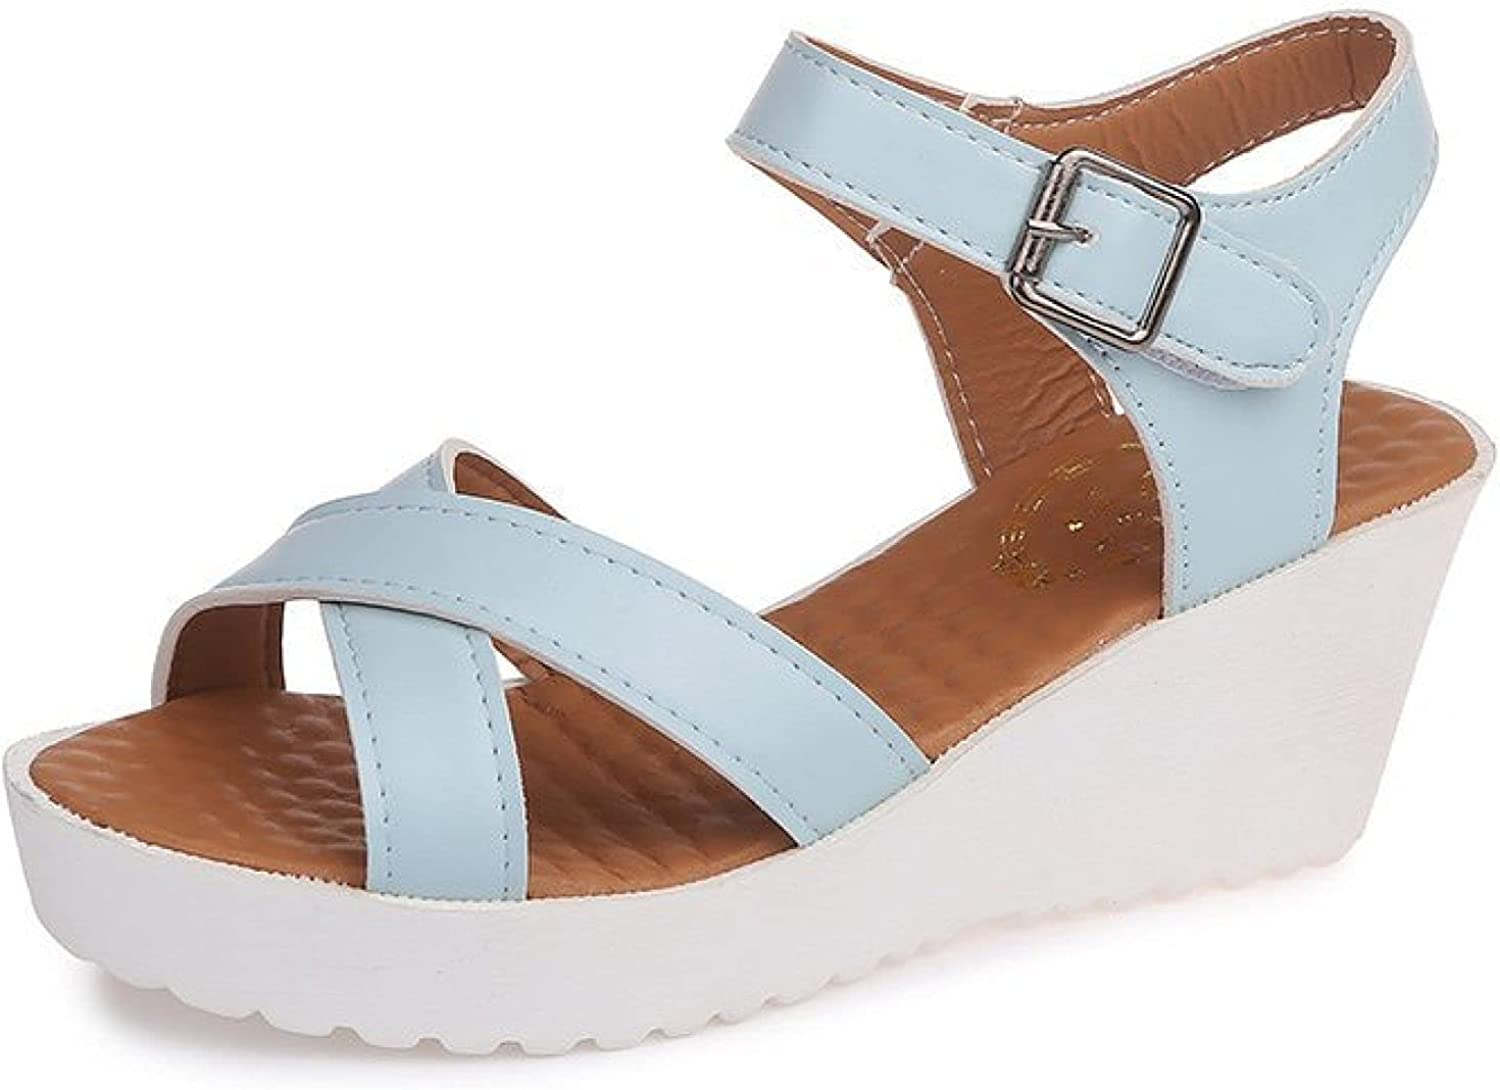 Womens Wedges Sandals Summer Open San Antonio Mall Strap Buckle Challenge the lowest price of Japan Toe Ankle Platfor